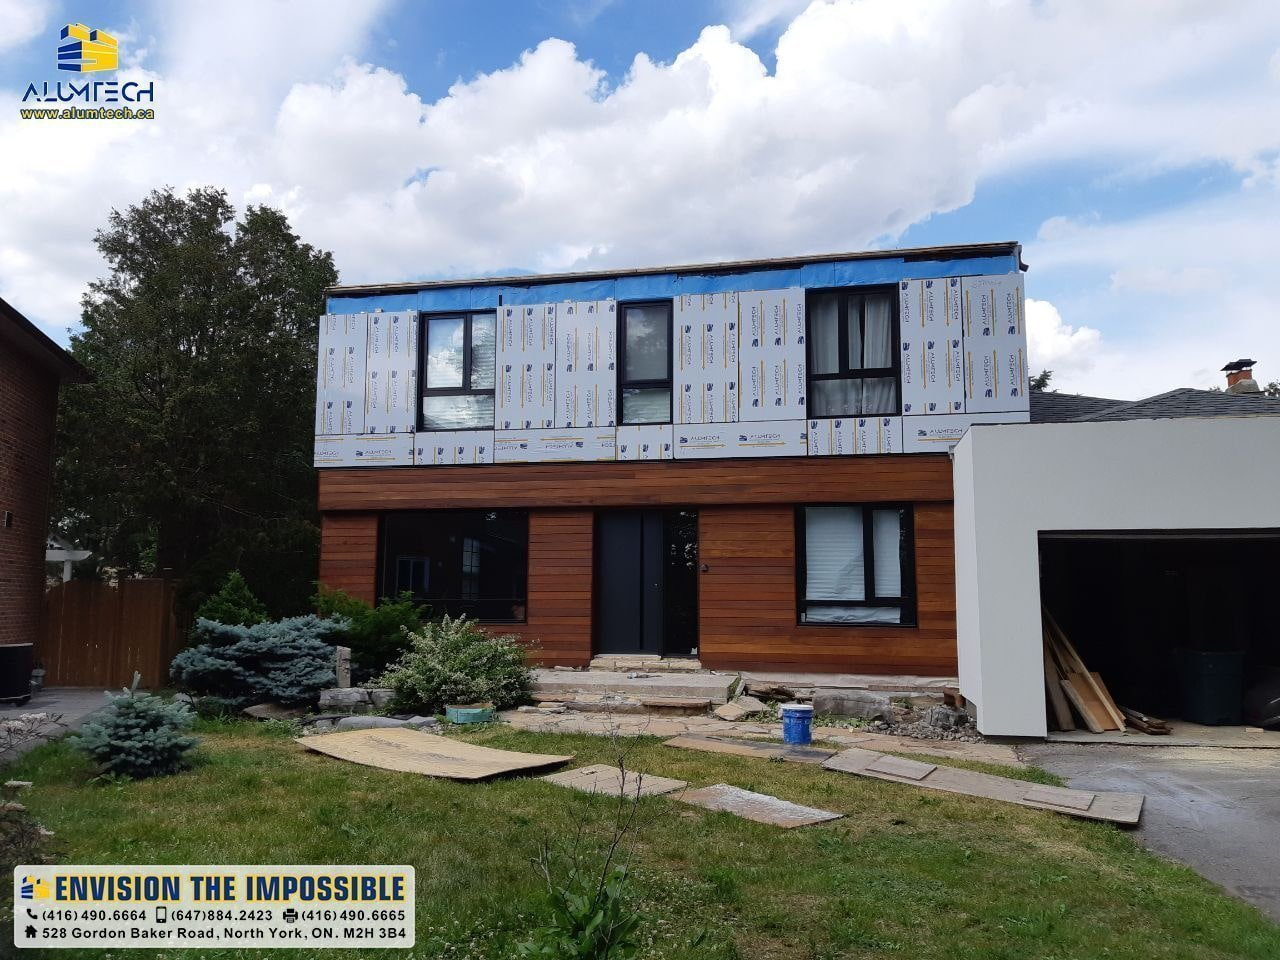 Combination of the black Aluminum composite panels with wood